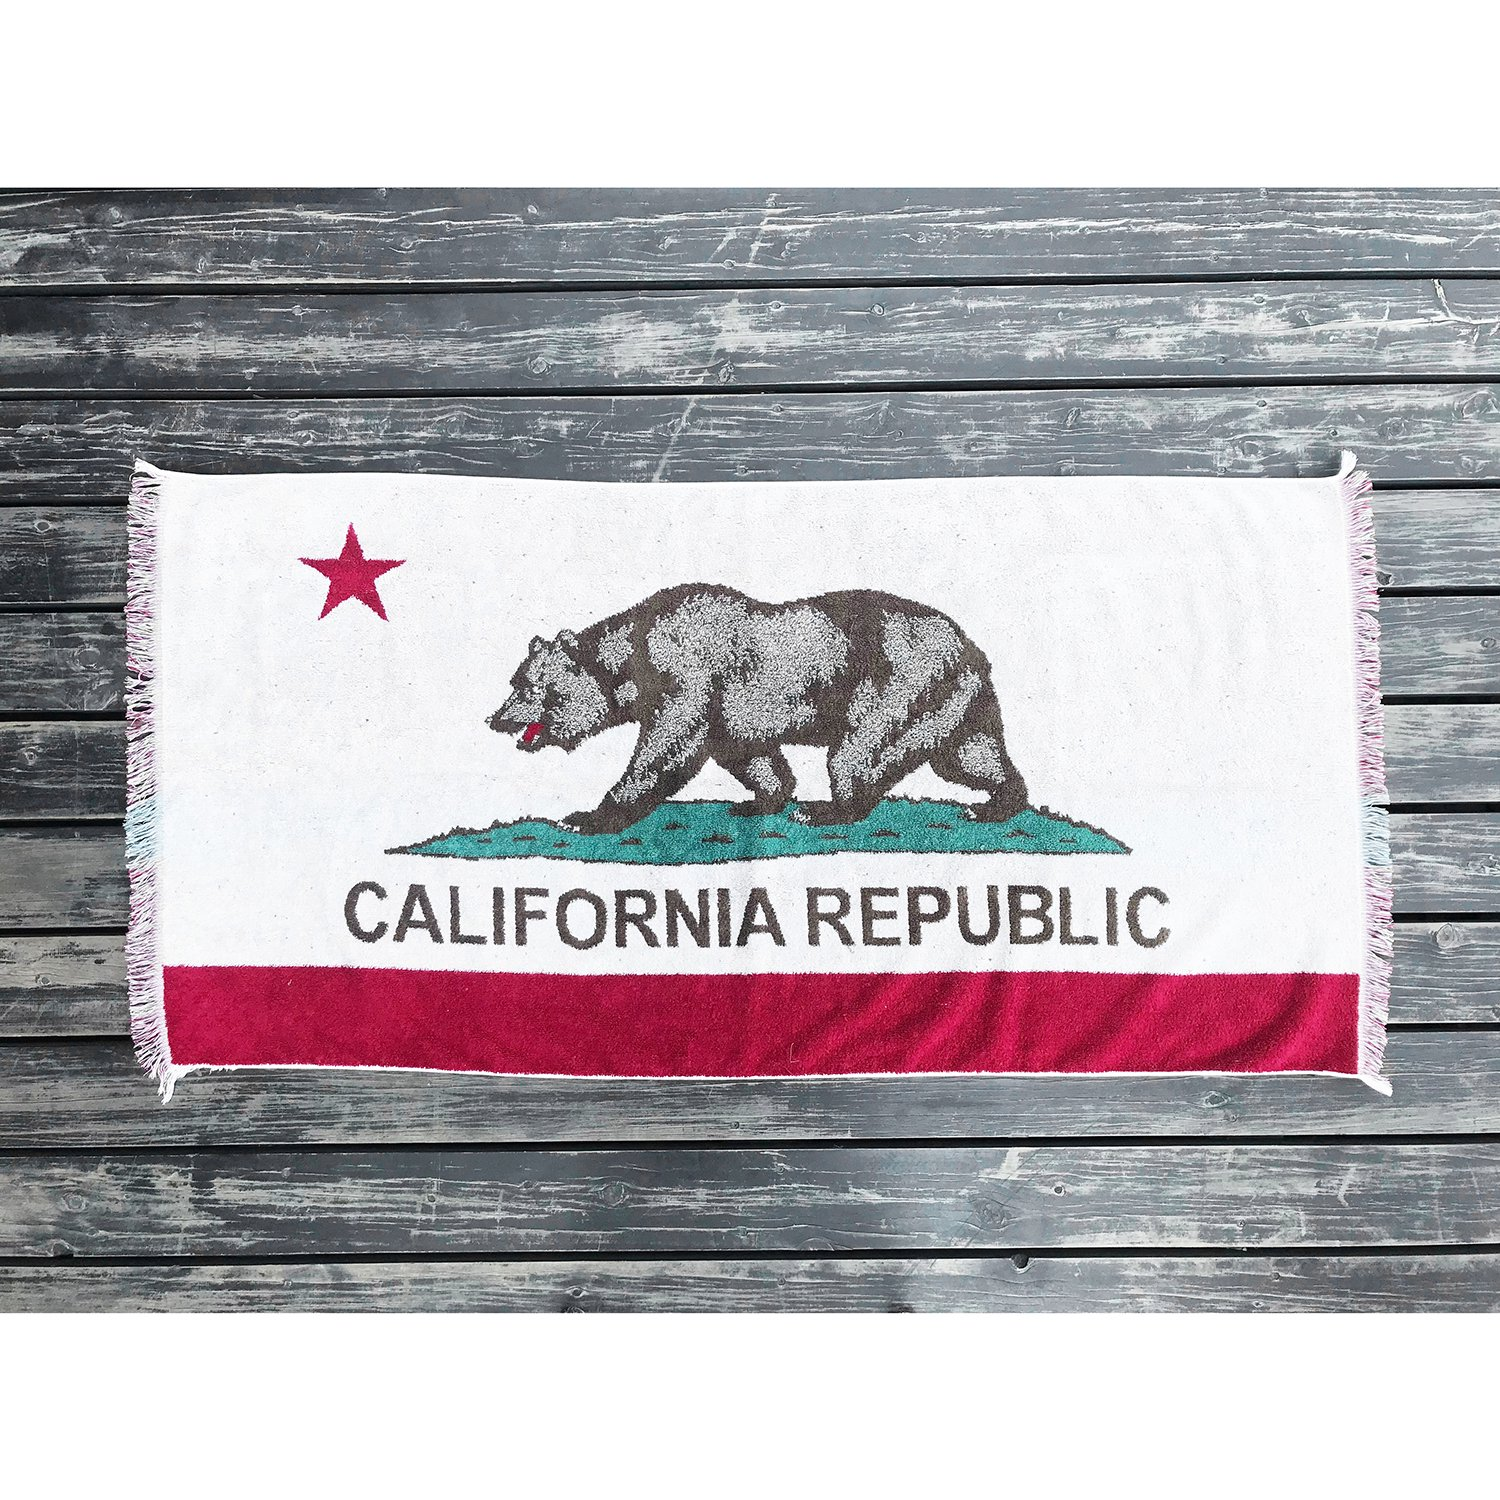 CAPTAINS HELM Select #CALIFORNIA FLAG BEACH BLANKET